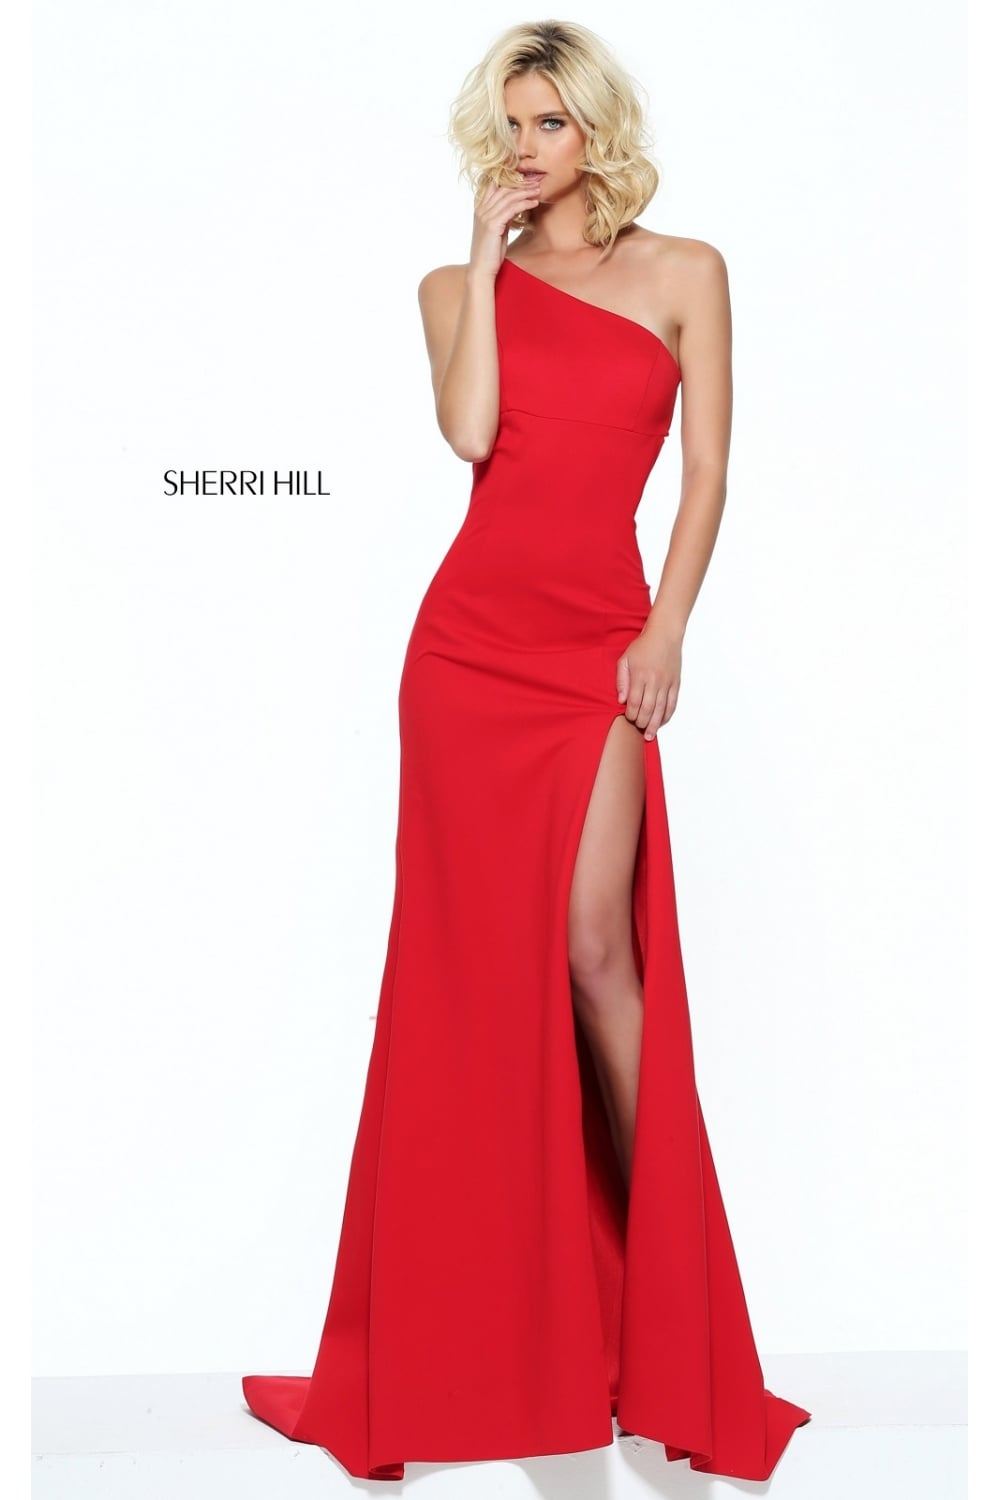 One shoulder wiggle dress great for casual work wear,office dress,summer GRACE KARIN Women Off Shoulder Batwing Cape Midi Dress. by GRACE KARIN. $ - $ $ 15 $ 24 89 Prime. FREE Shipping on eligible orders. Some sizes/colors are Prime eligible. out of 5 stars